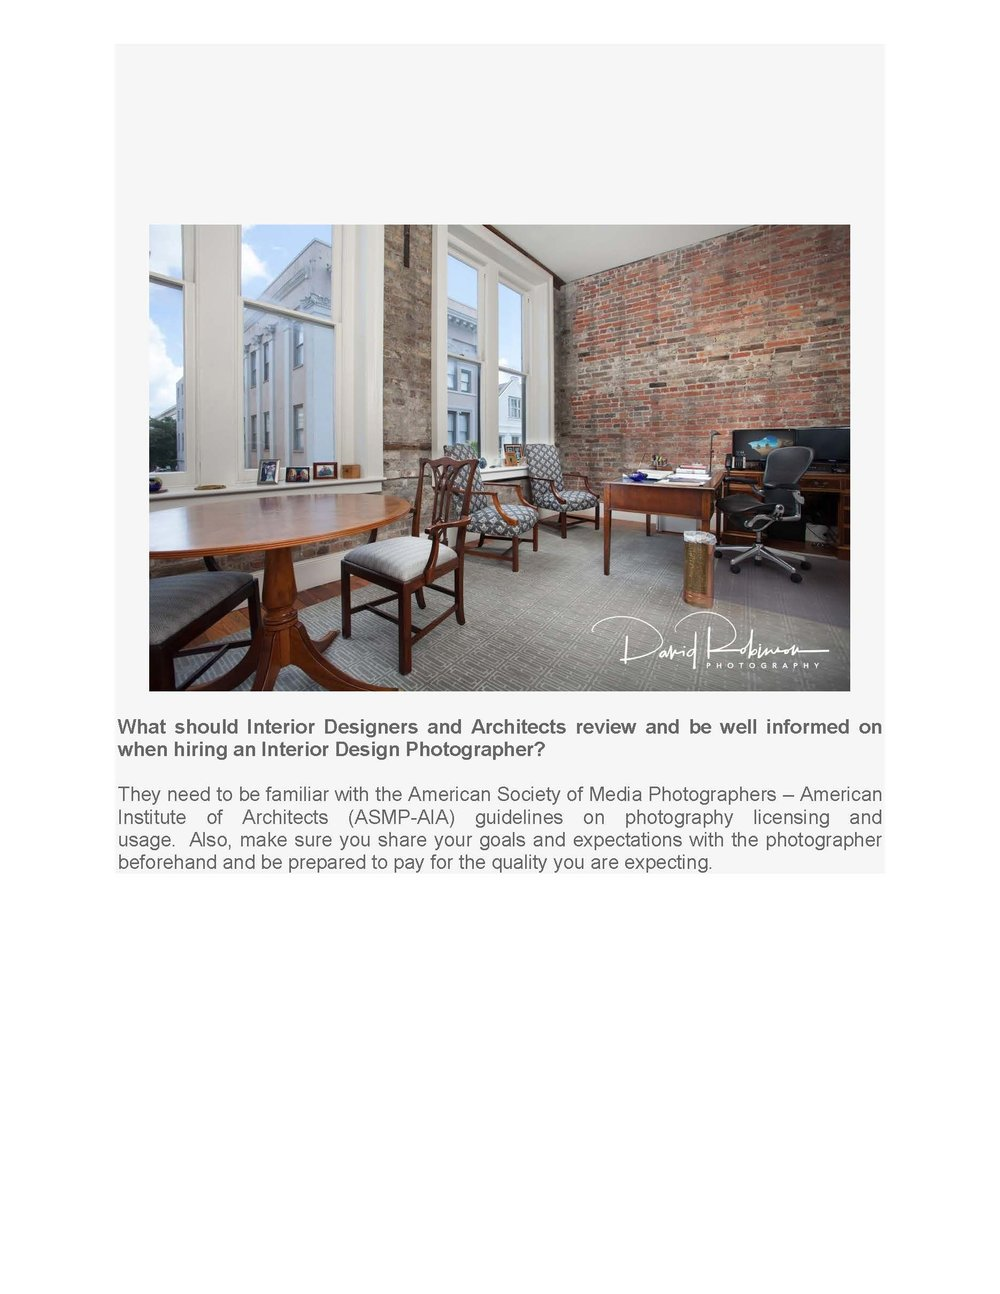 Architectural and Interior Design Photographer (1)_Page_4.jpg